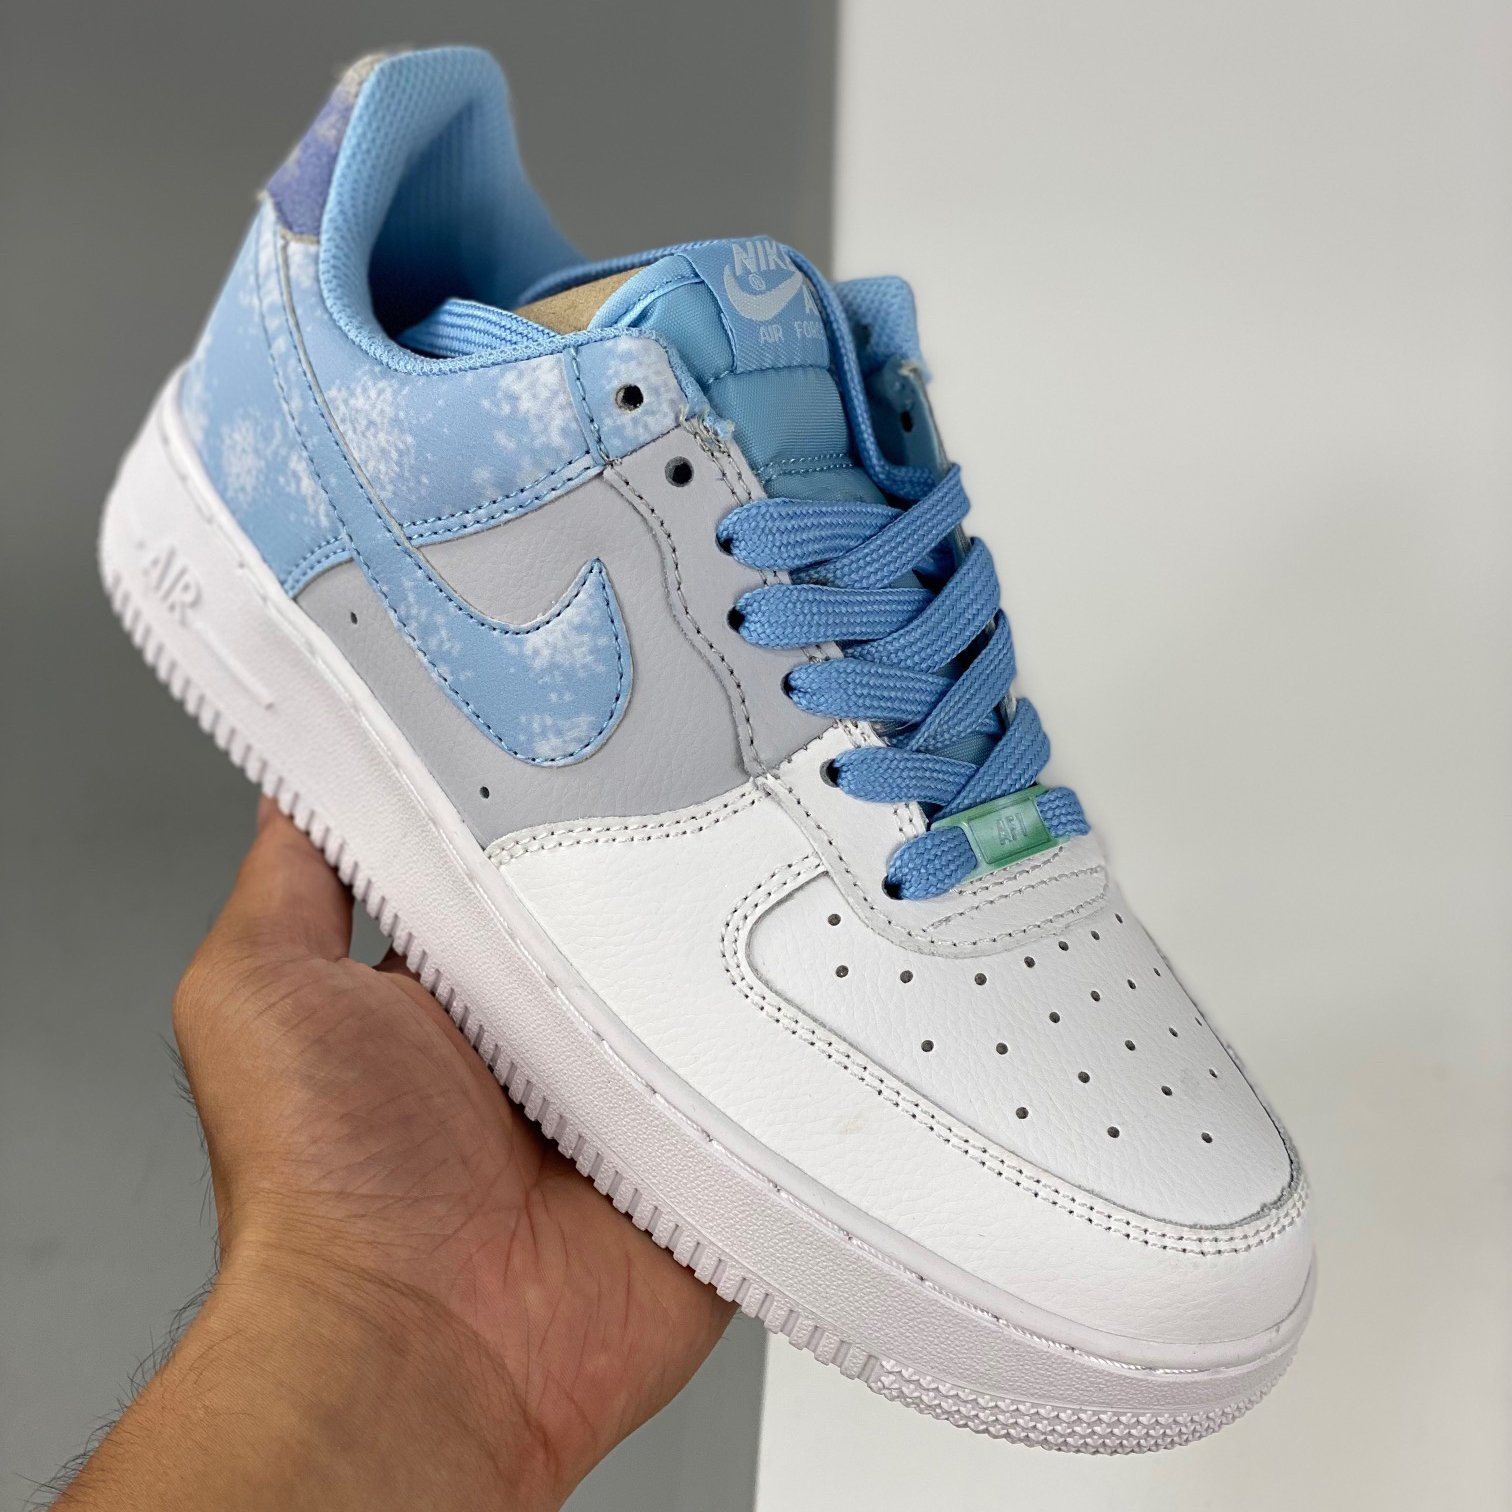 Image of Nike Air Force 1 Low White/Grey/Blue Sneakers Shoes